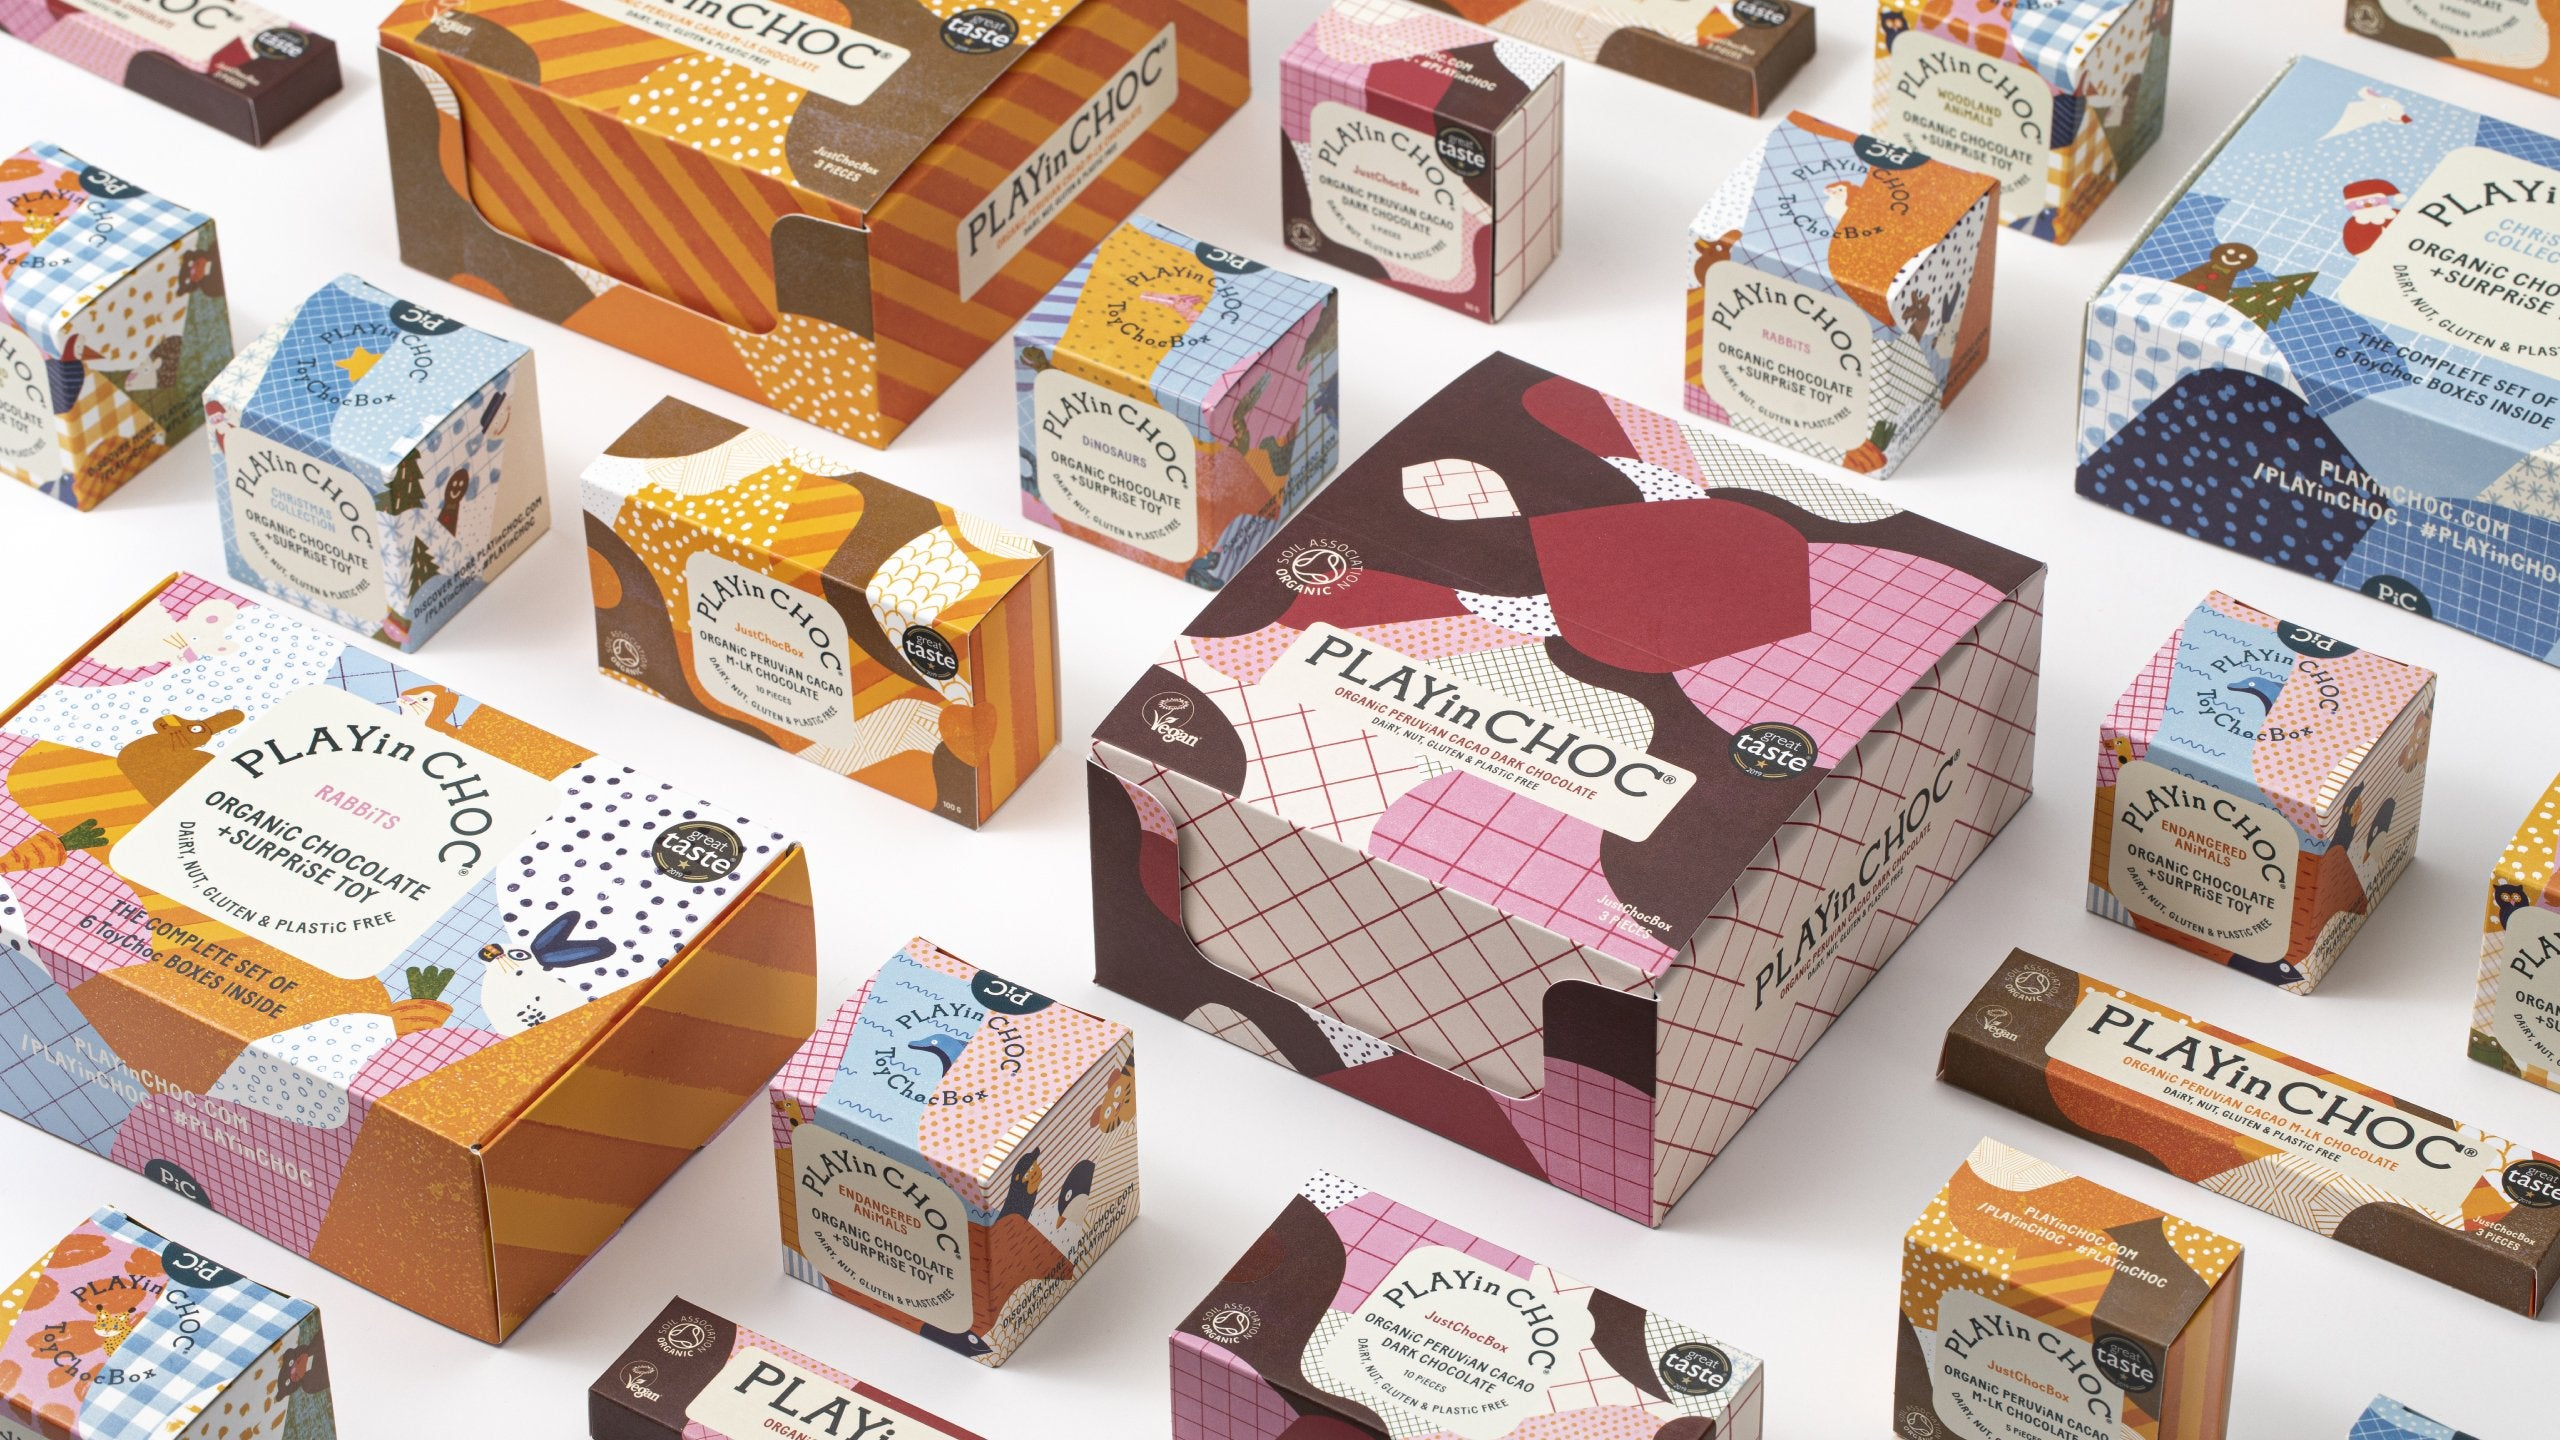 Chocolate Gifts For Kids | Vegan & Organic Chocolate Gift Boxes – PLAYin  CHOC